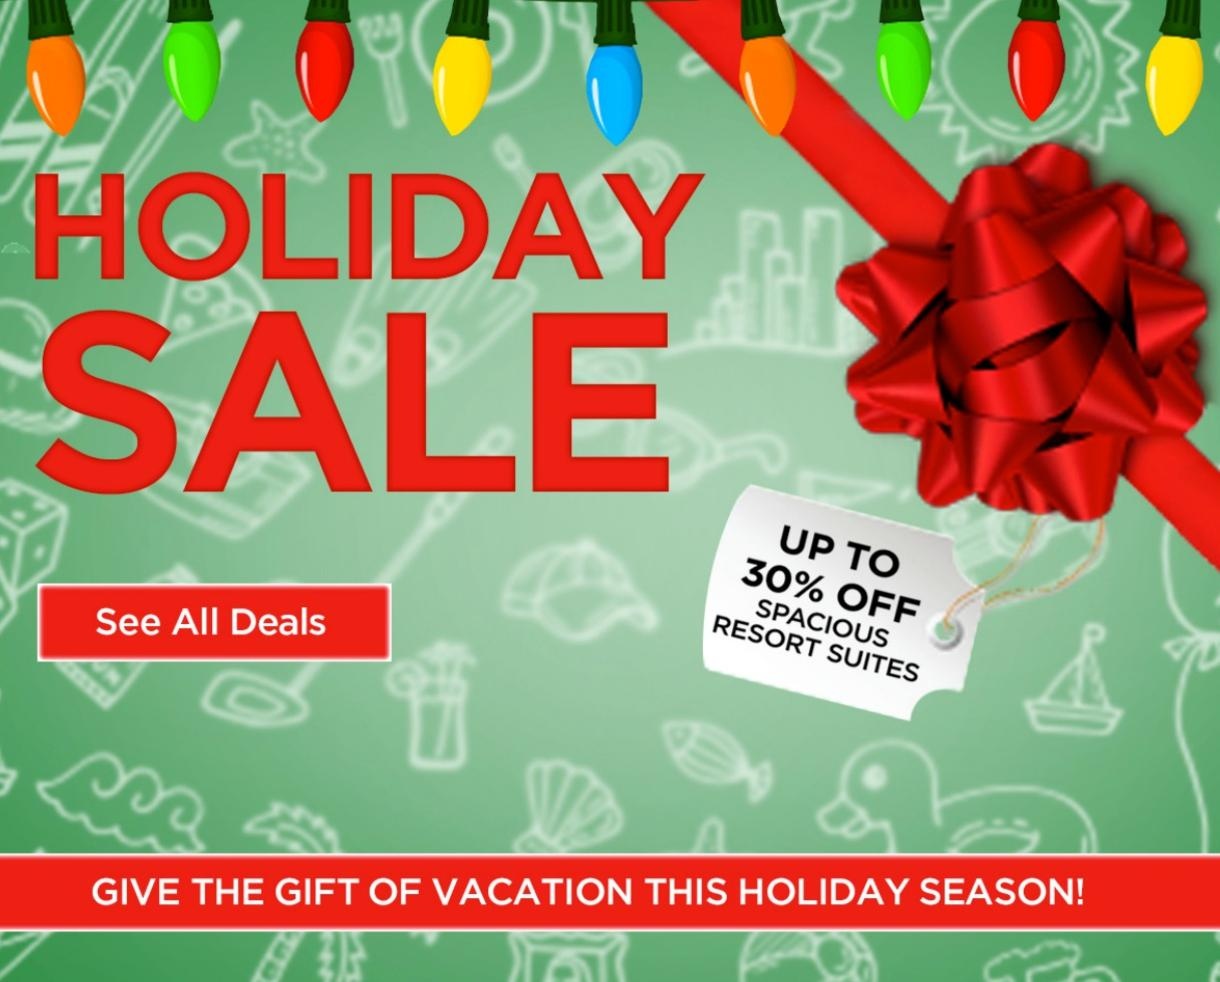 Give the Gift of Vacation – Wyndham Extra Holidays Sale – Resort Savings Up to 30% Off!